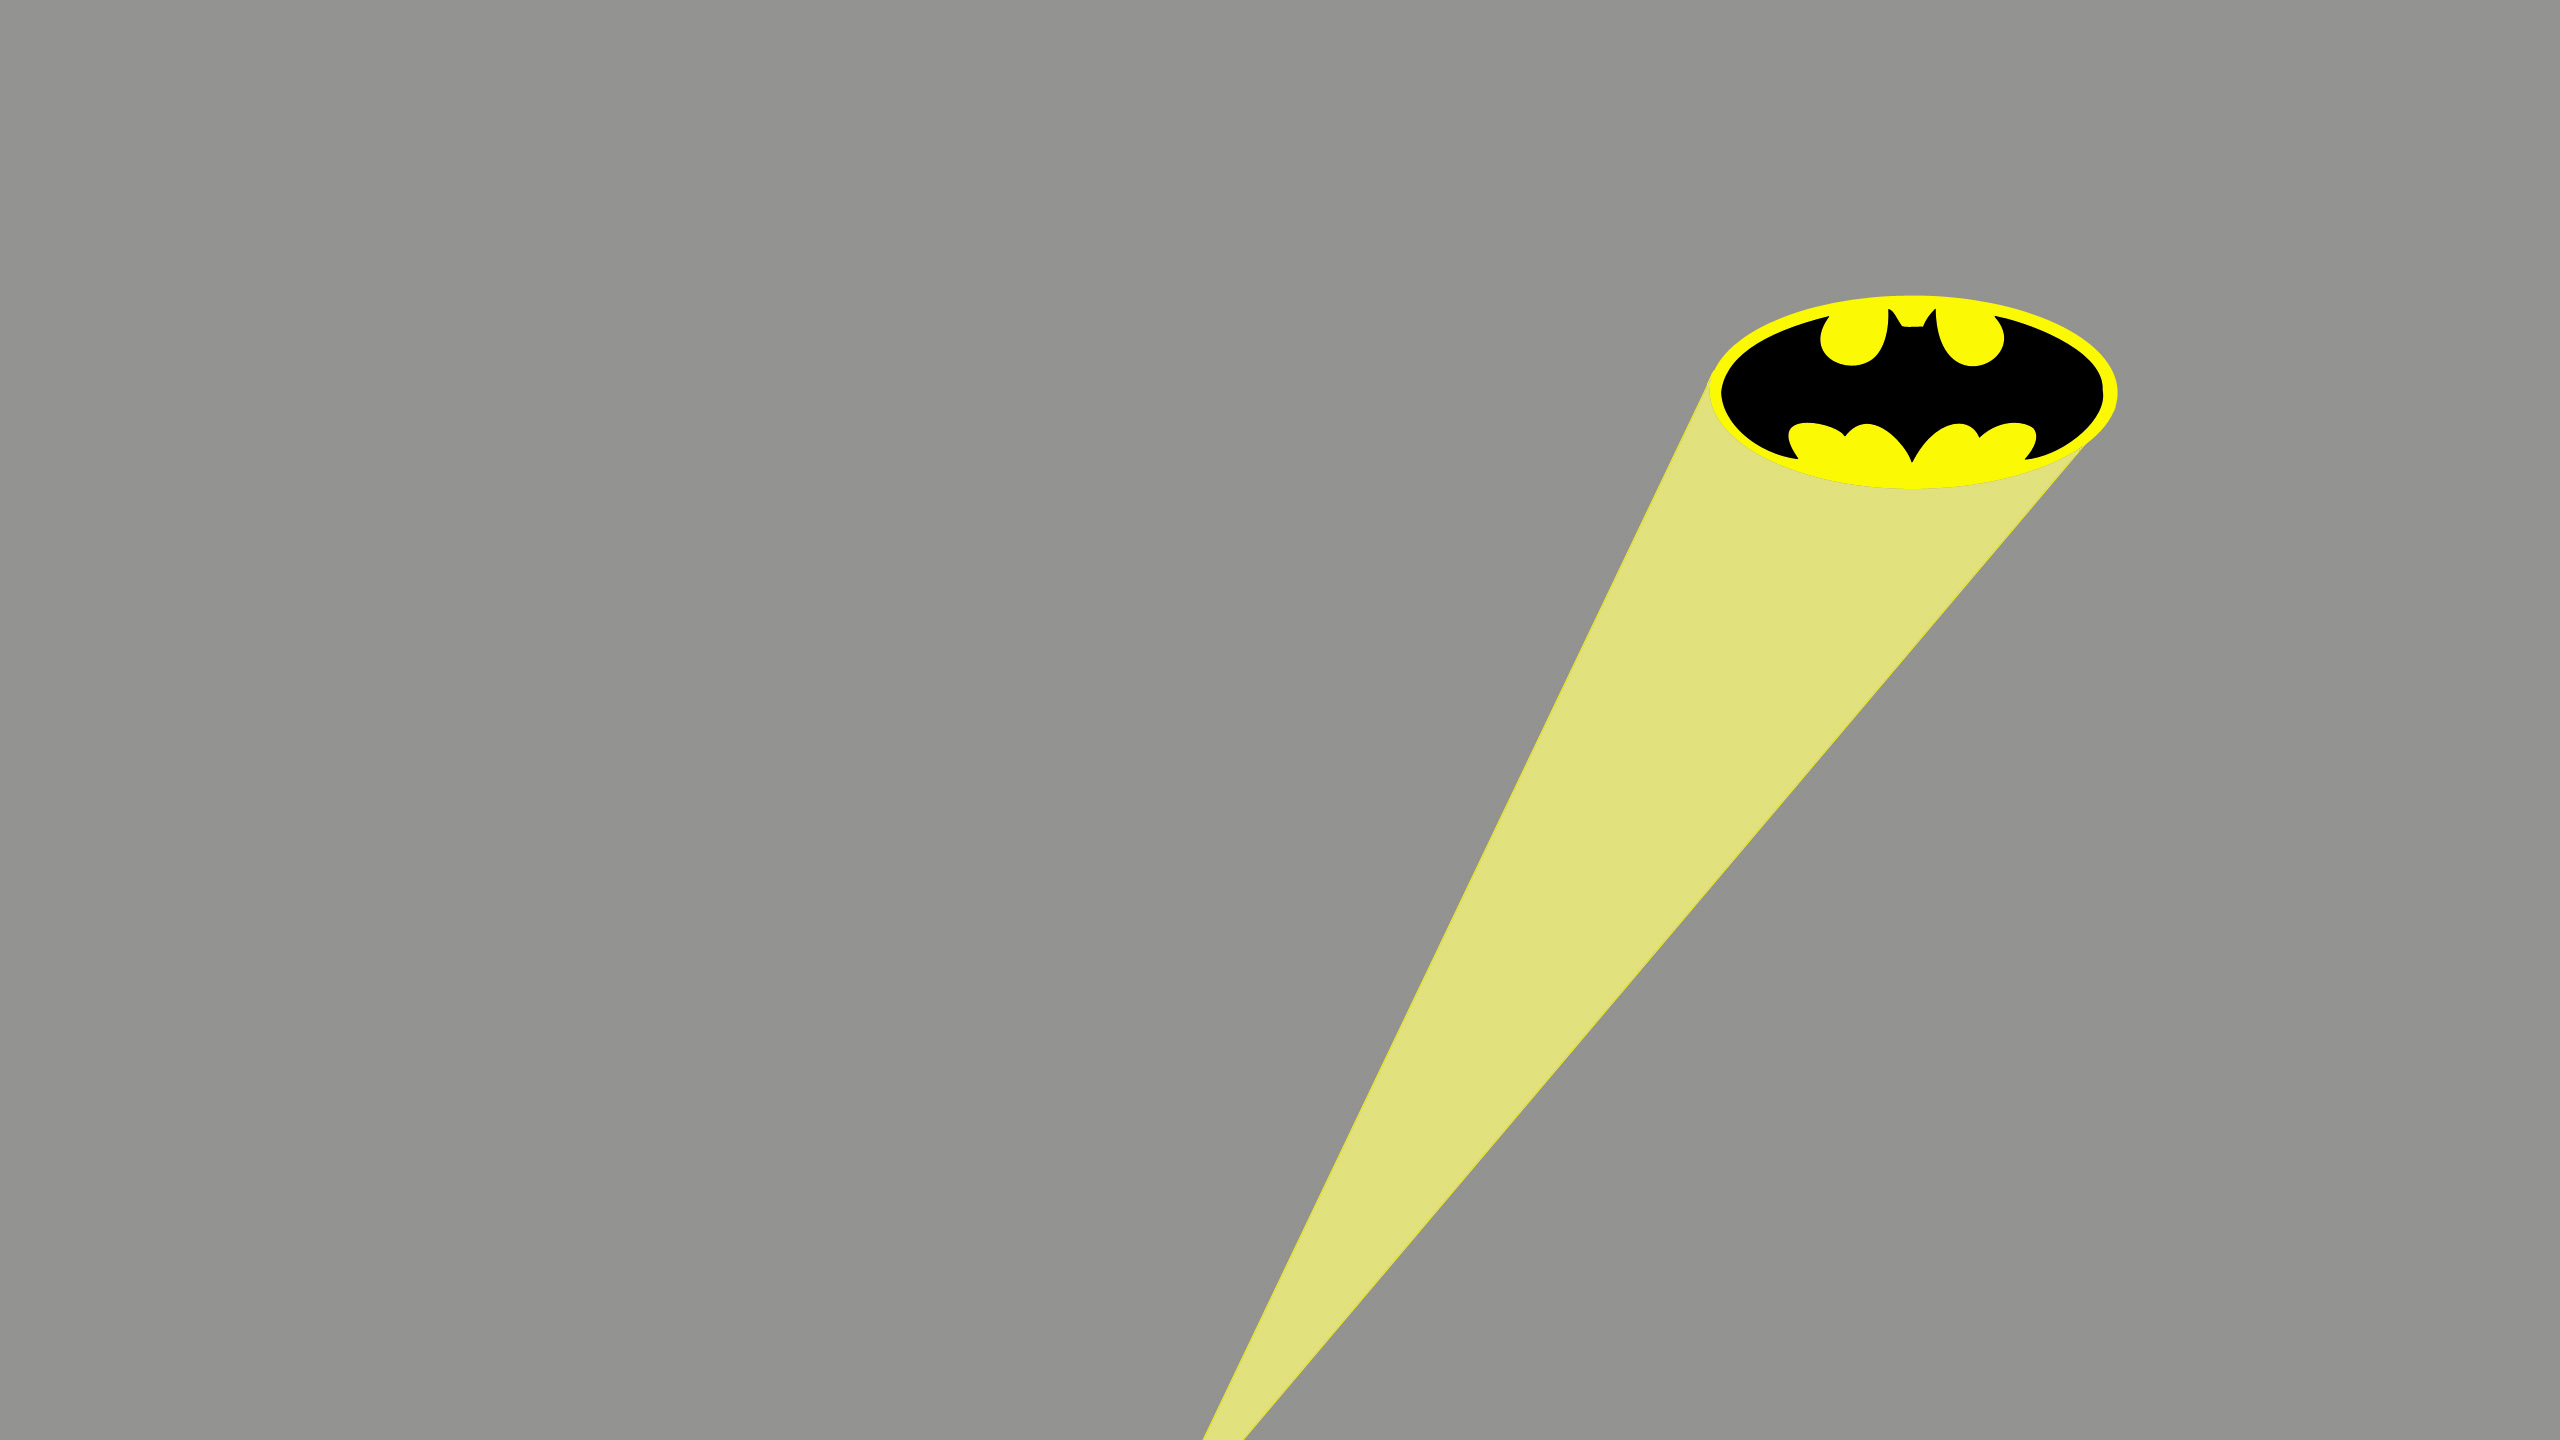 Batman and the Batsignal